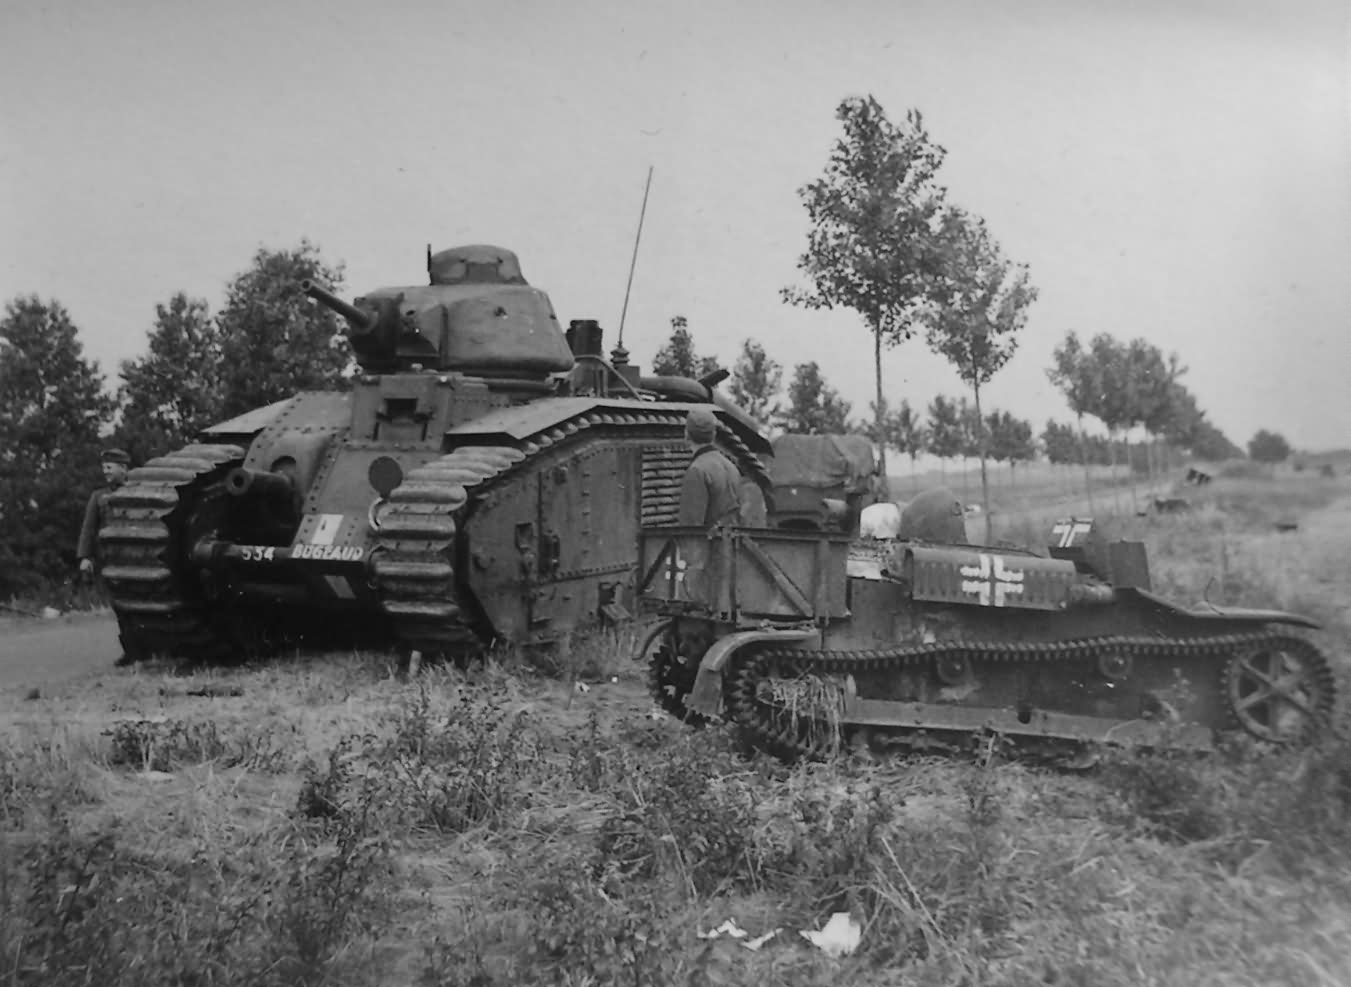 Char B1 bis Tank 534 named BUGEAUD of 28th BCC 3